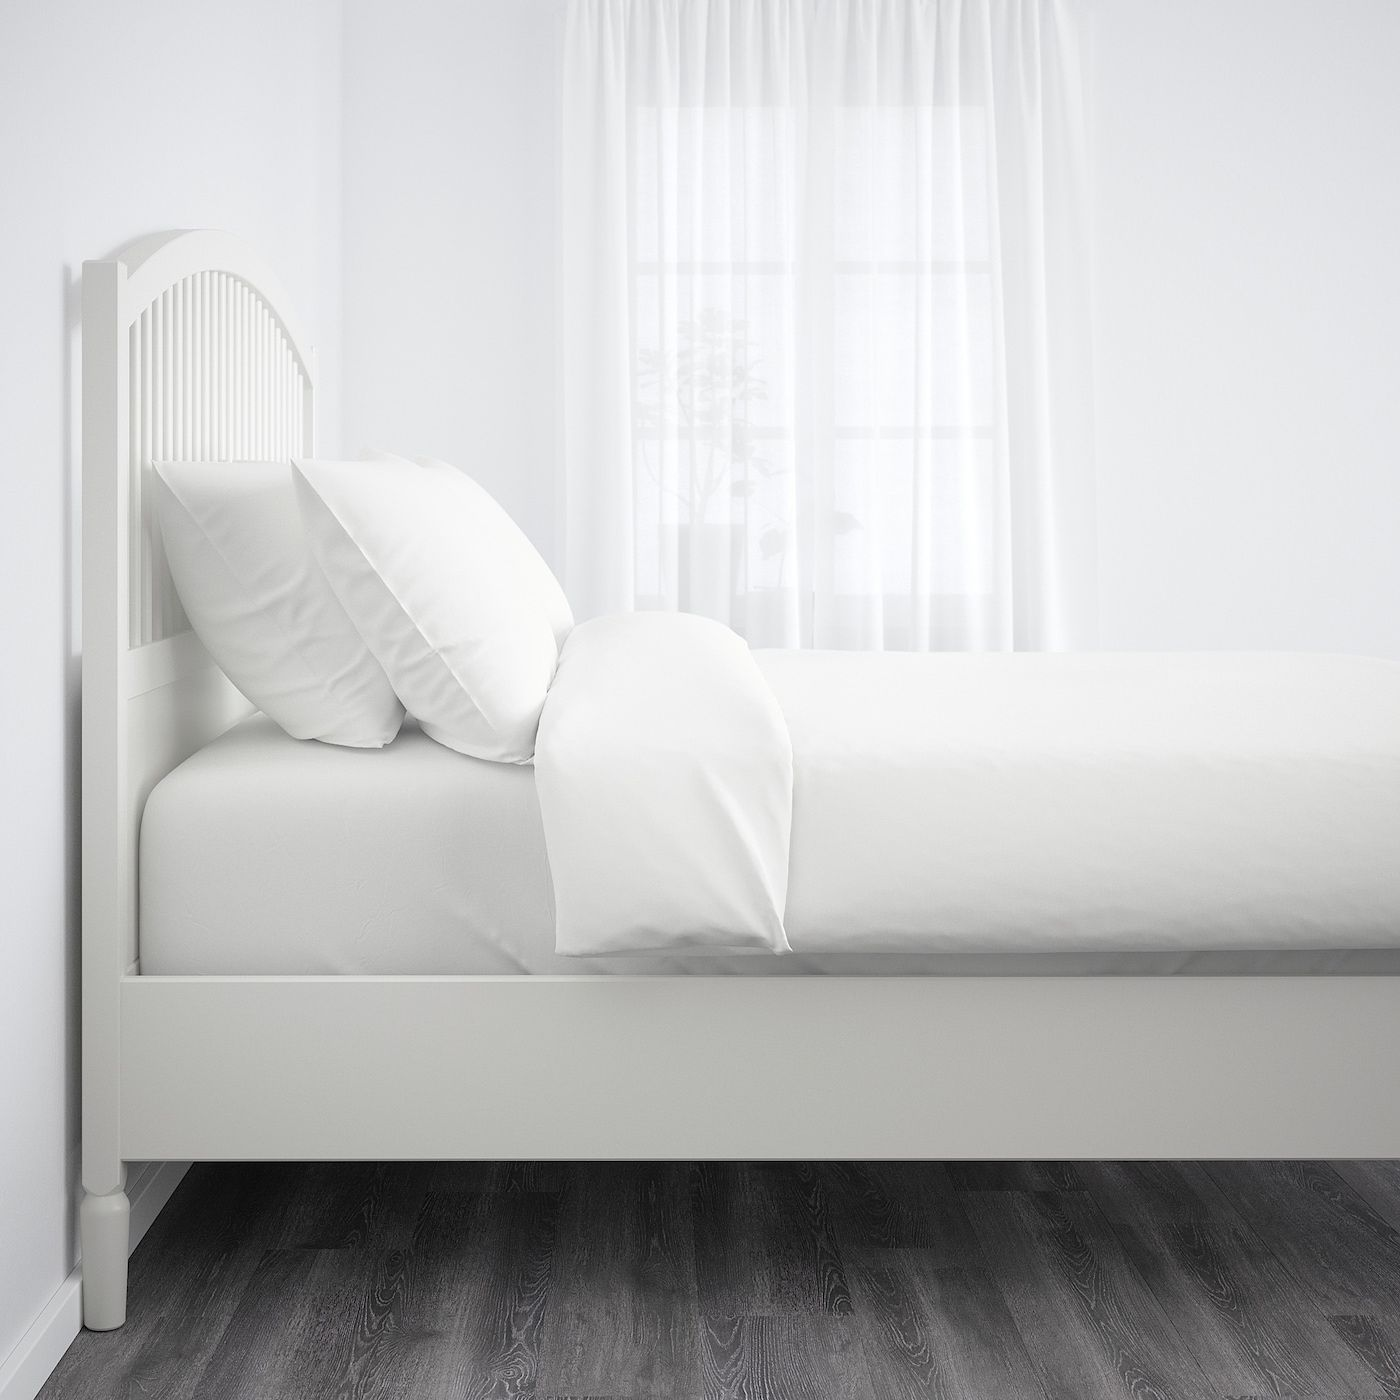 Tyssedal Bettgestell Weiss Ikea Osterreich In 2020 Bed Frame White Bed Frame Ikea Tyssedal